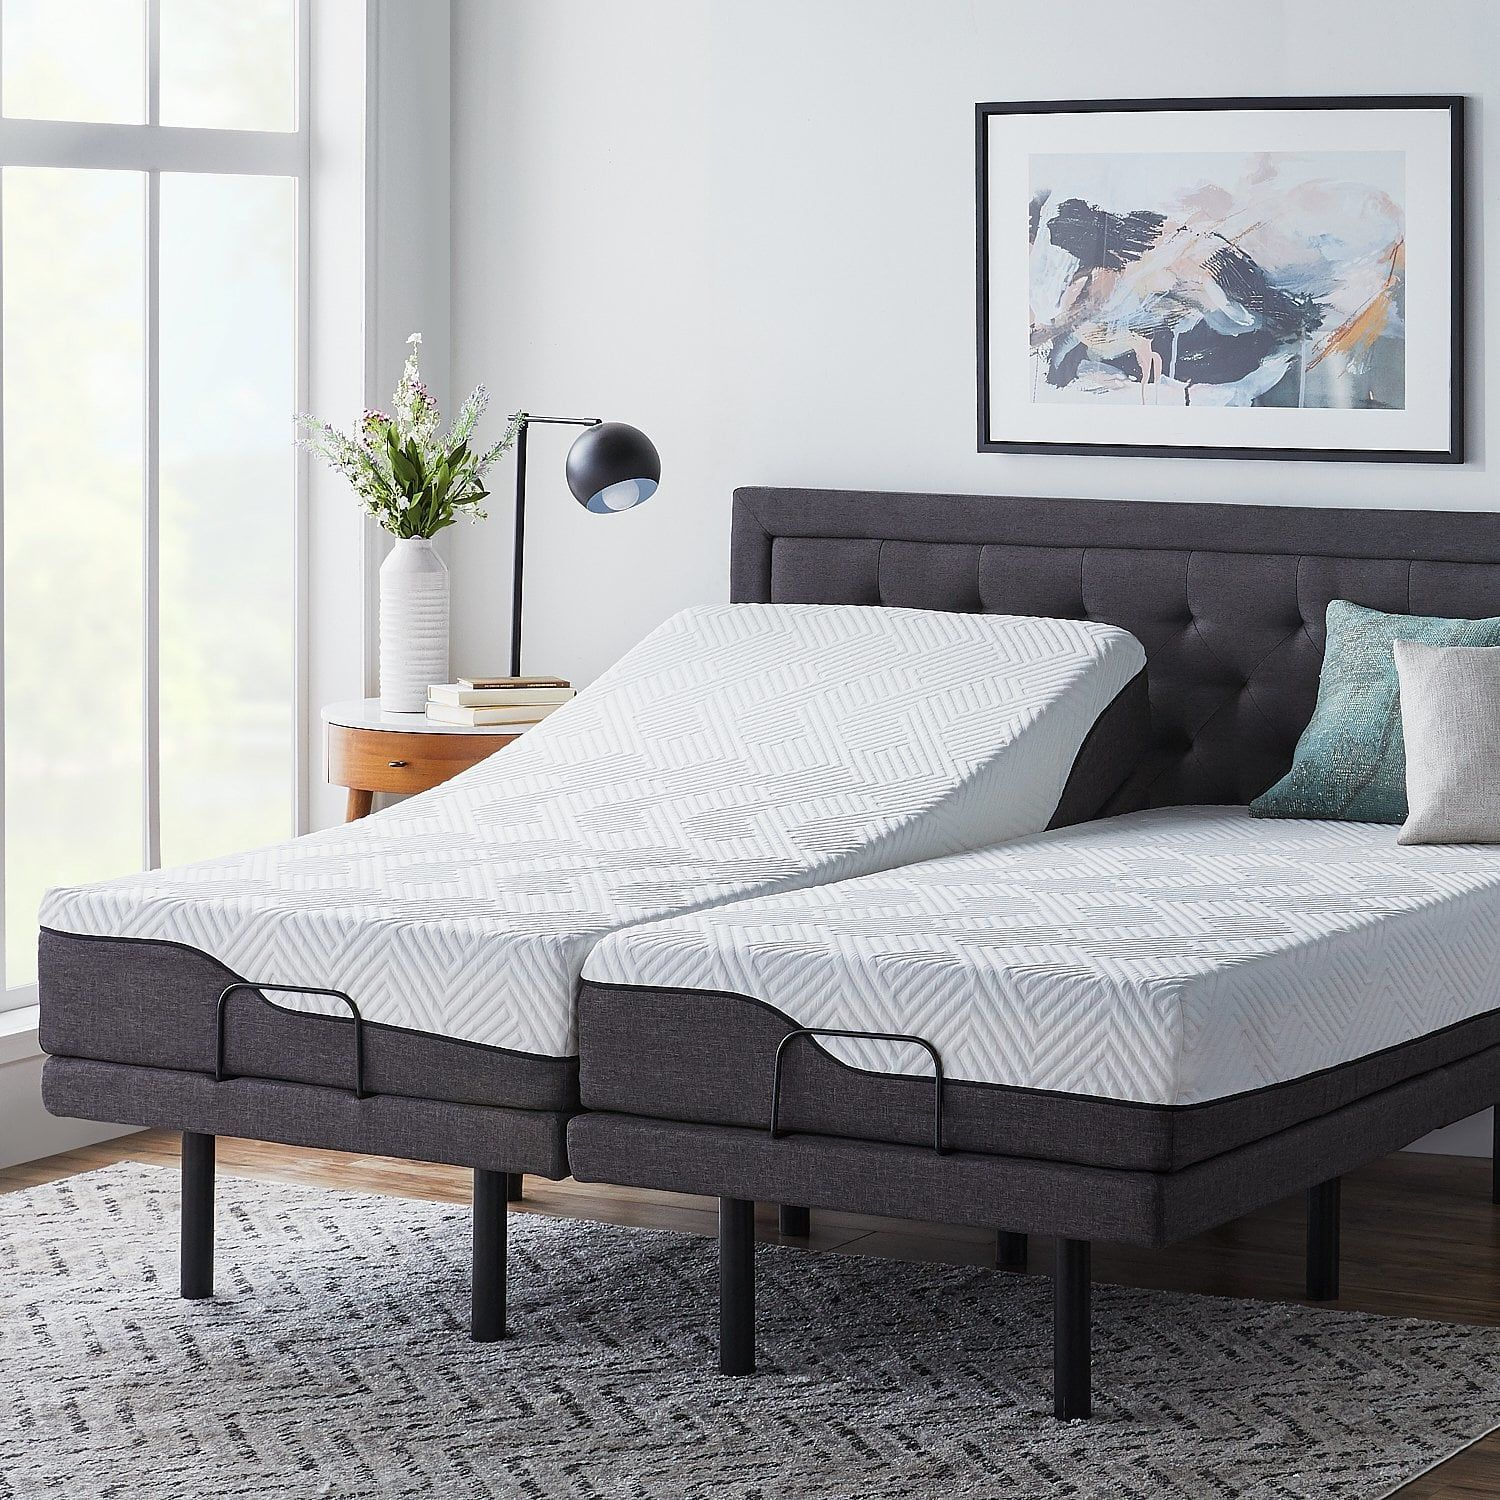 Lucid Comfort Collection 10 Inch Split King Size Memory Foam Hybrid Mattress With L300 Adjustable Base Spl Adjustable Beds Adjustable Bed Base Hybrid Mattress